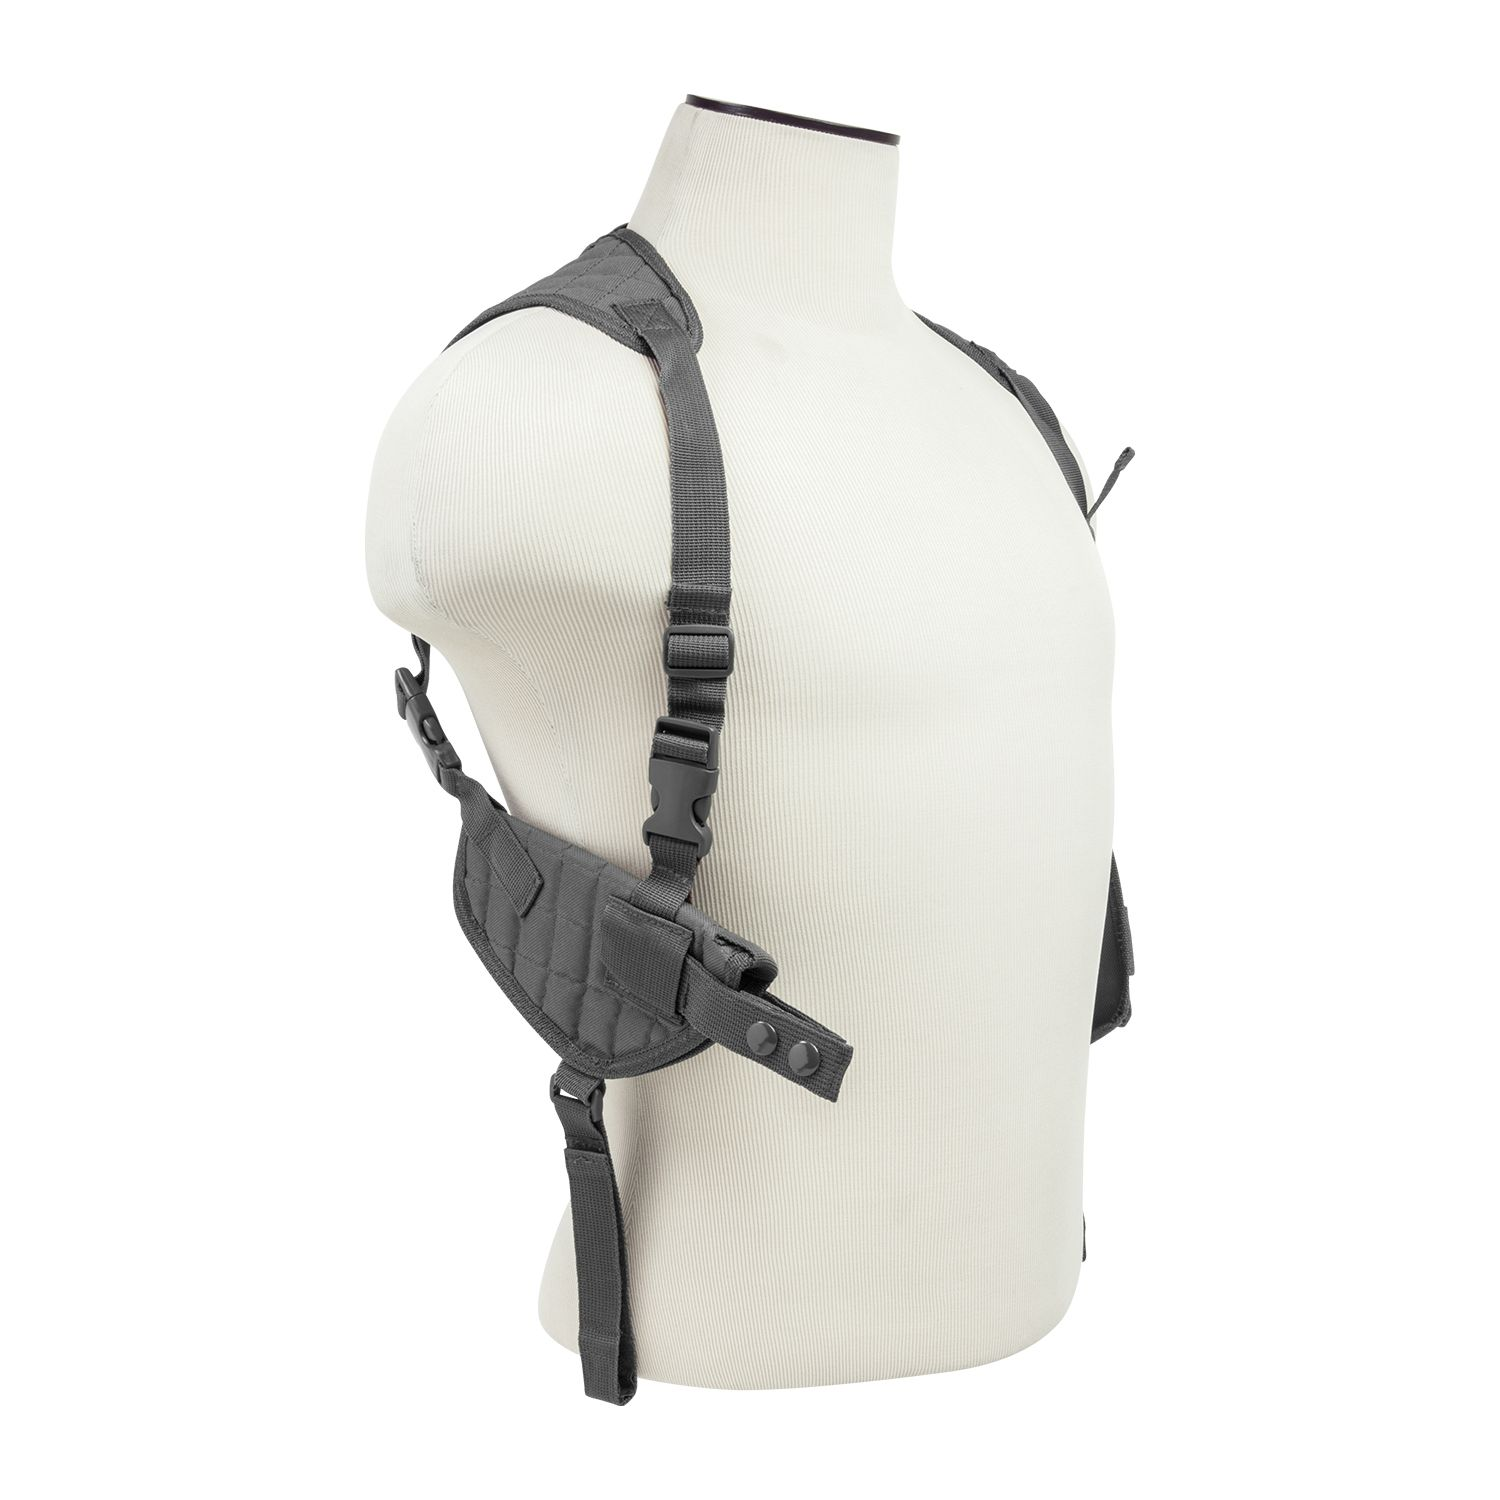 Tactical Double Shoulder Holster with Dual Mag Pouches Ambidextrous Shoulder Rig